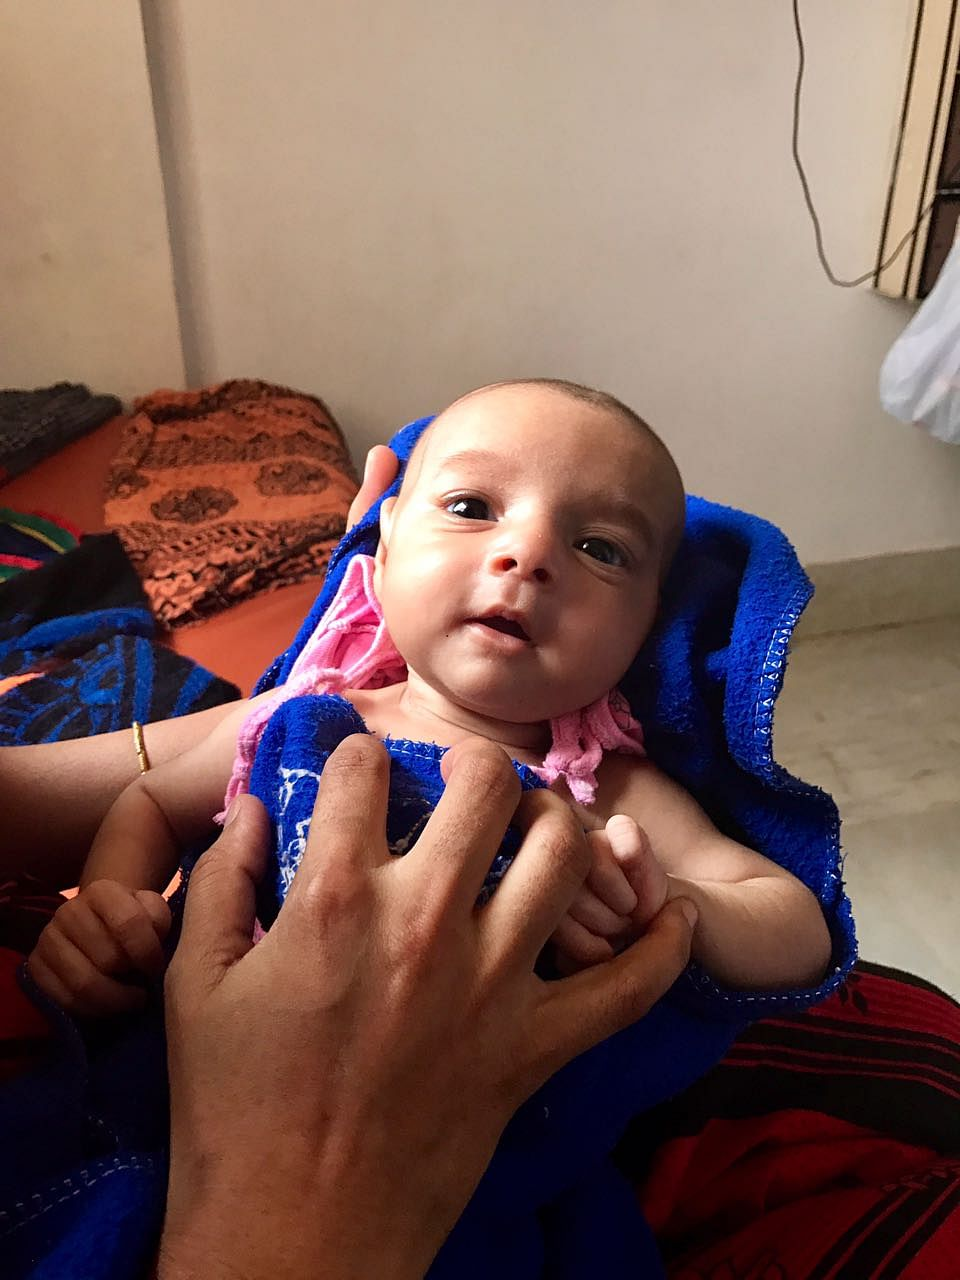 This baby boy, born to Yogita, came to Amrita Institute in an extremely critical condition. He was brought from Maharashtra, 1700 kms away, in a taxi. He was operated on for transposition of the great arteries. (Photo: <b>The Quint</b>)